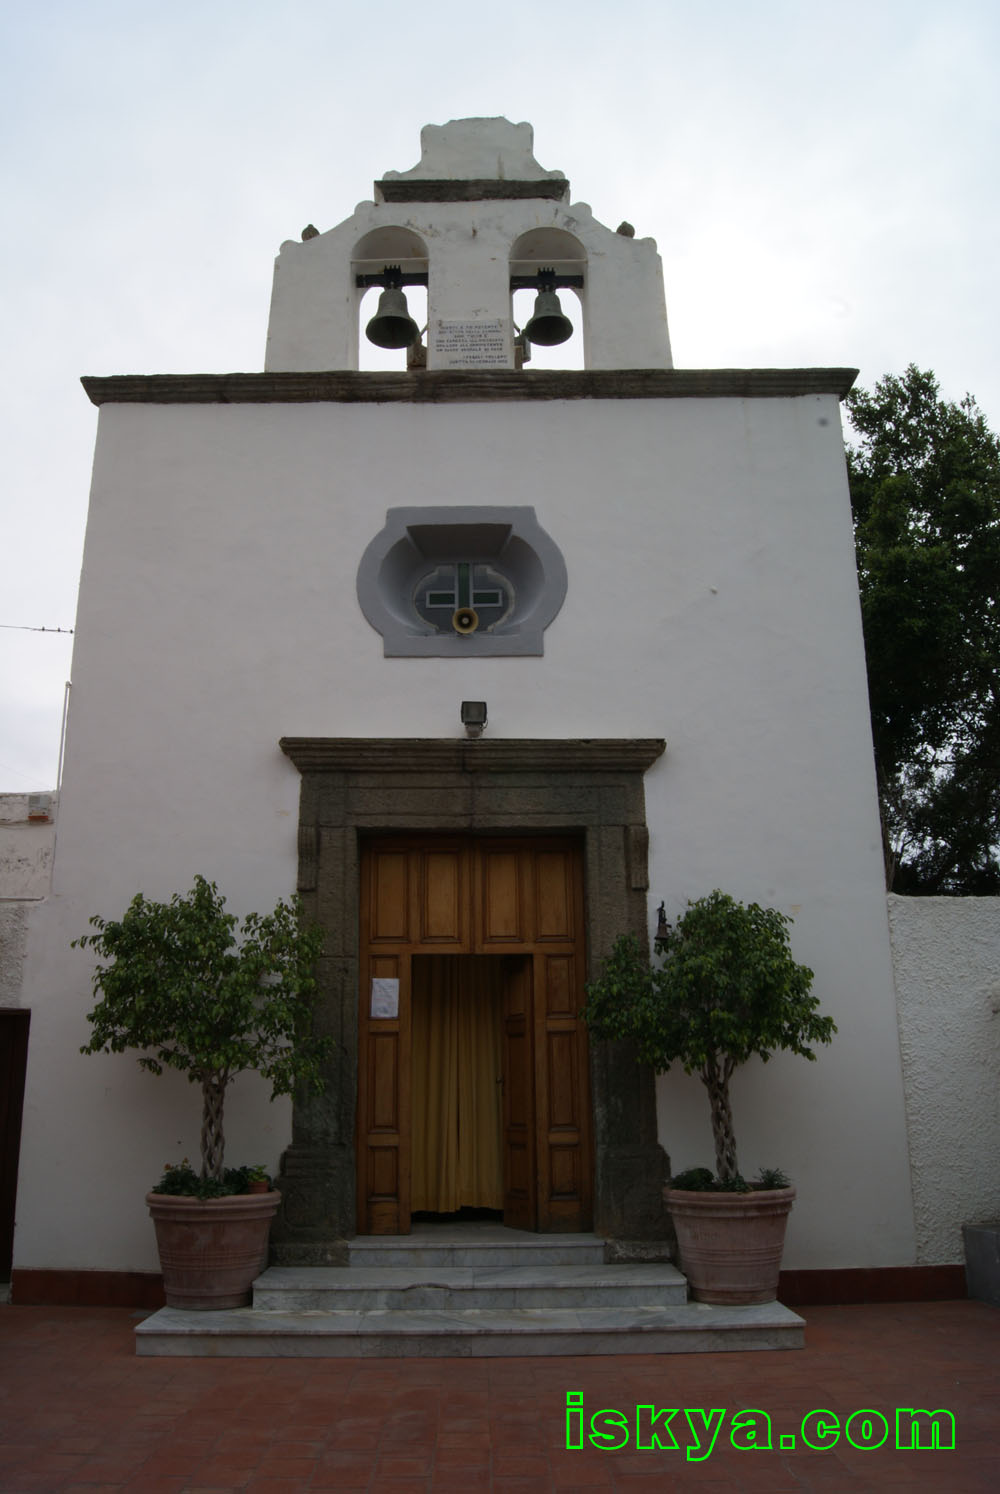 Chiesa di San Francesco Saverio (Forio)